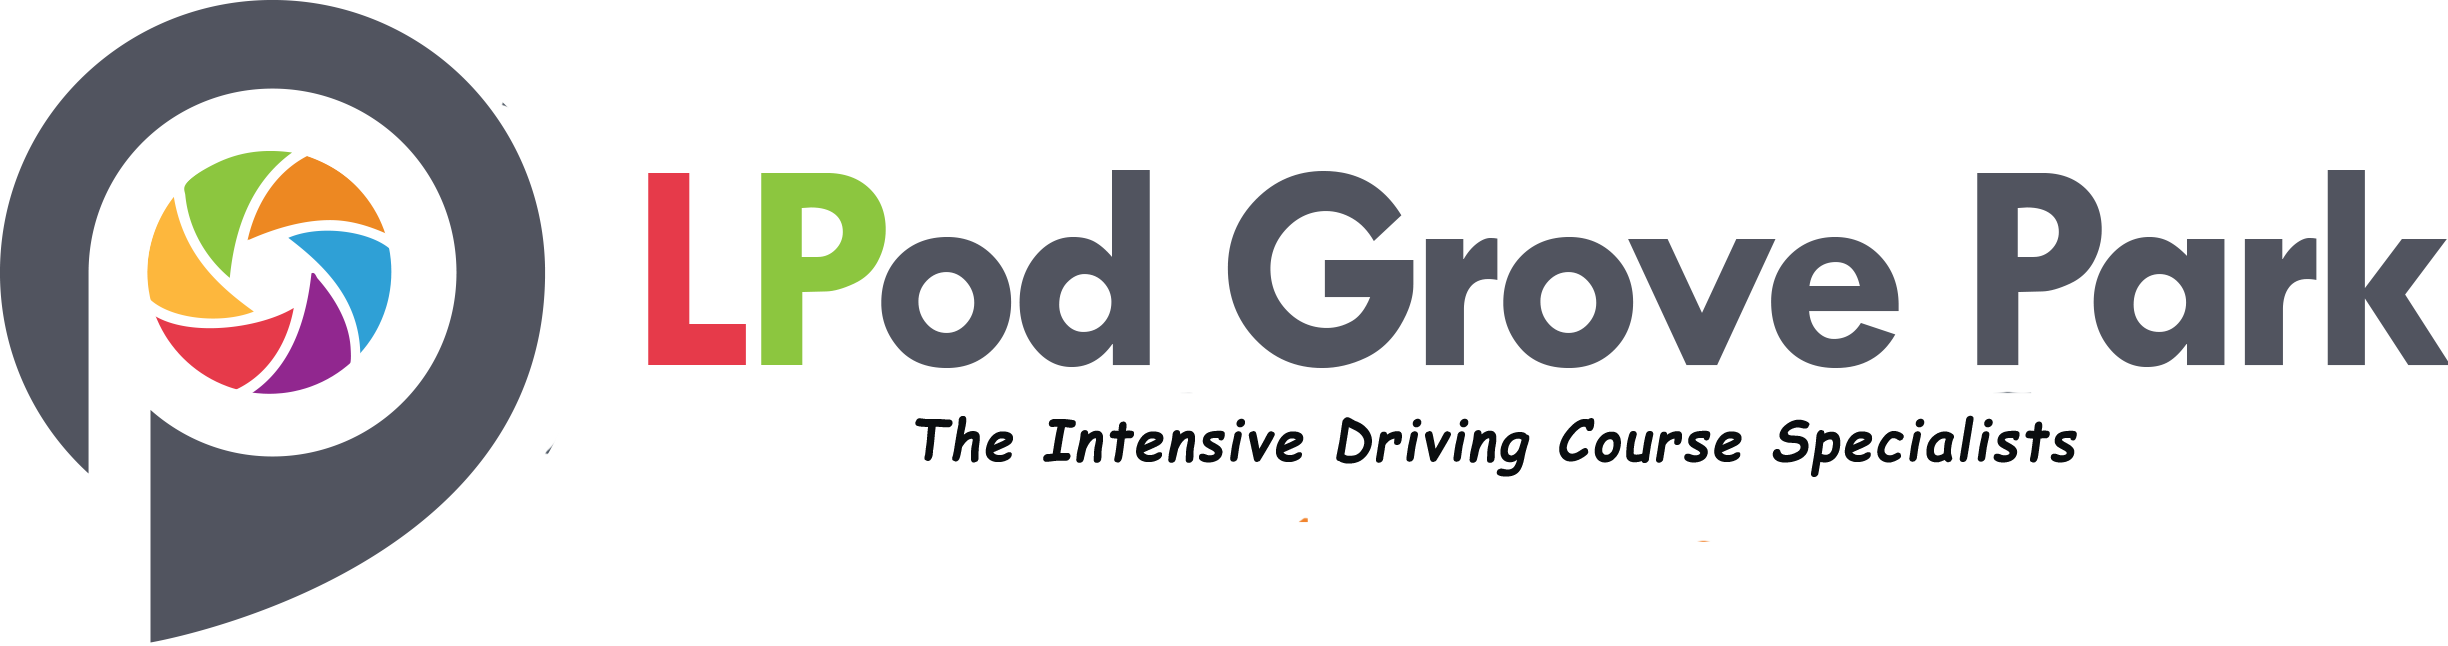 intensive driving courses grove park, intensive driving school grove park, intensive driving lessons grove park, one week driving course grove park, fast pass driving grove park, crash driving courses grove park, driving lessons grove park, automatic driving lessons grove park